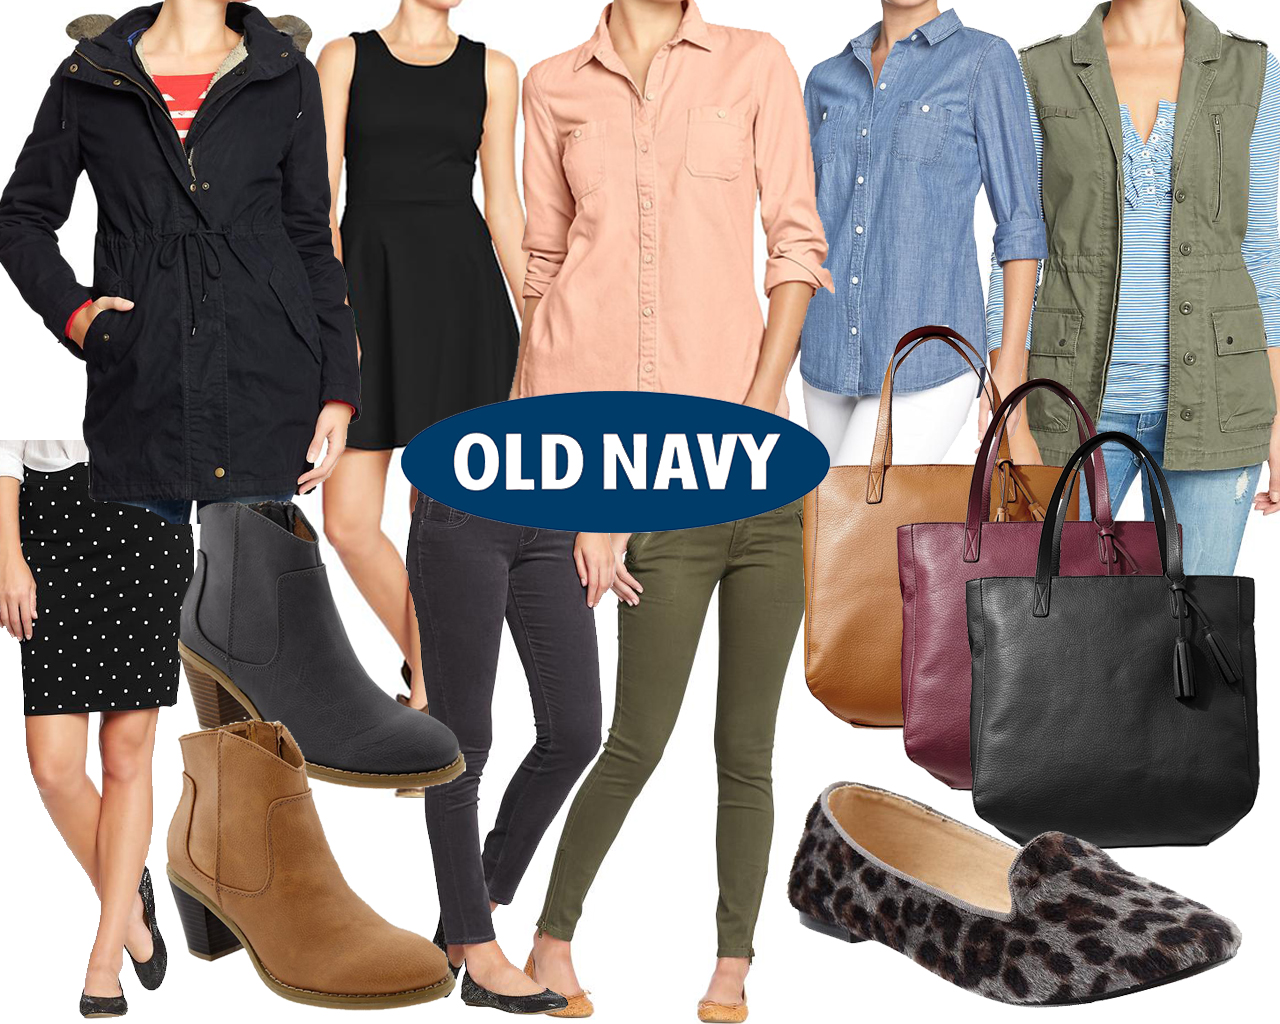 Exclusions: Offer valid on Old Navy merchandise only from 12/6/18 at am ET through 12/9/18 at pm ET in the US (including Puerto Rico) at Old Navy stores. Not valid at Old Navy online. Offer not valid on Clearance and Jewelry merchandise, Beauty and Consumables, Gift Cards & Register Lane Items. Not valid on international purchases.